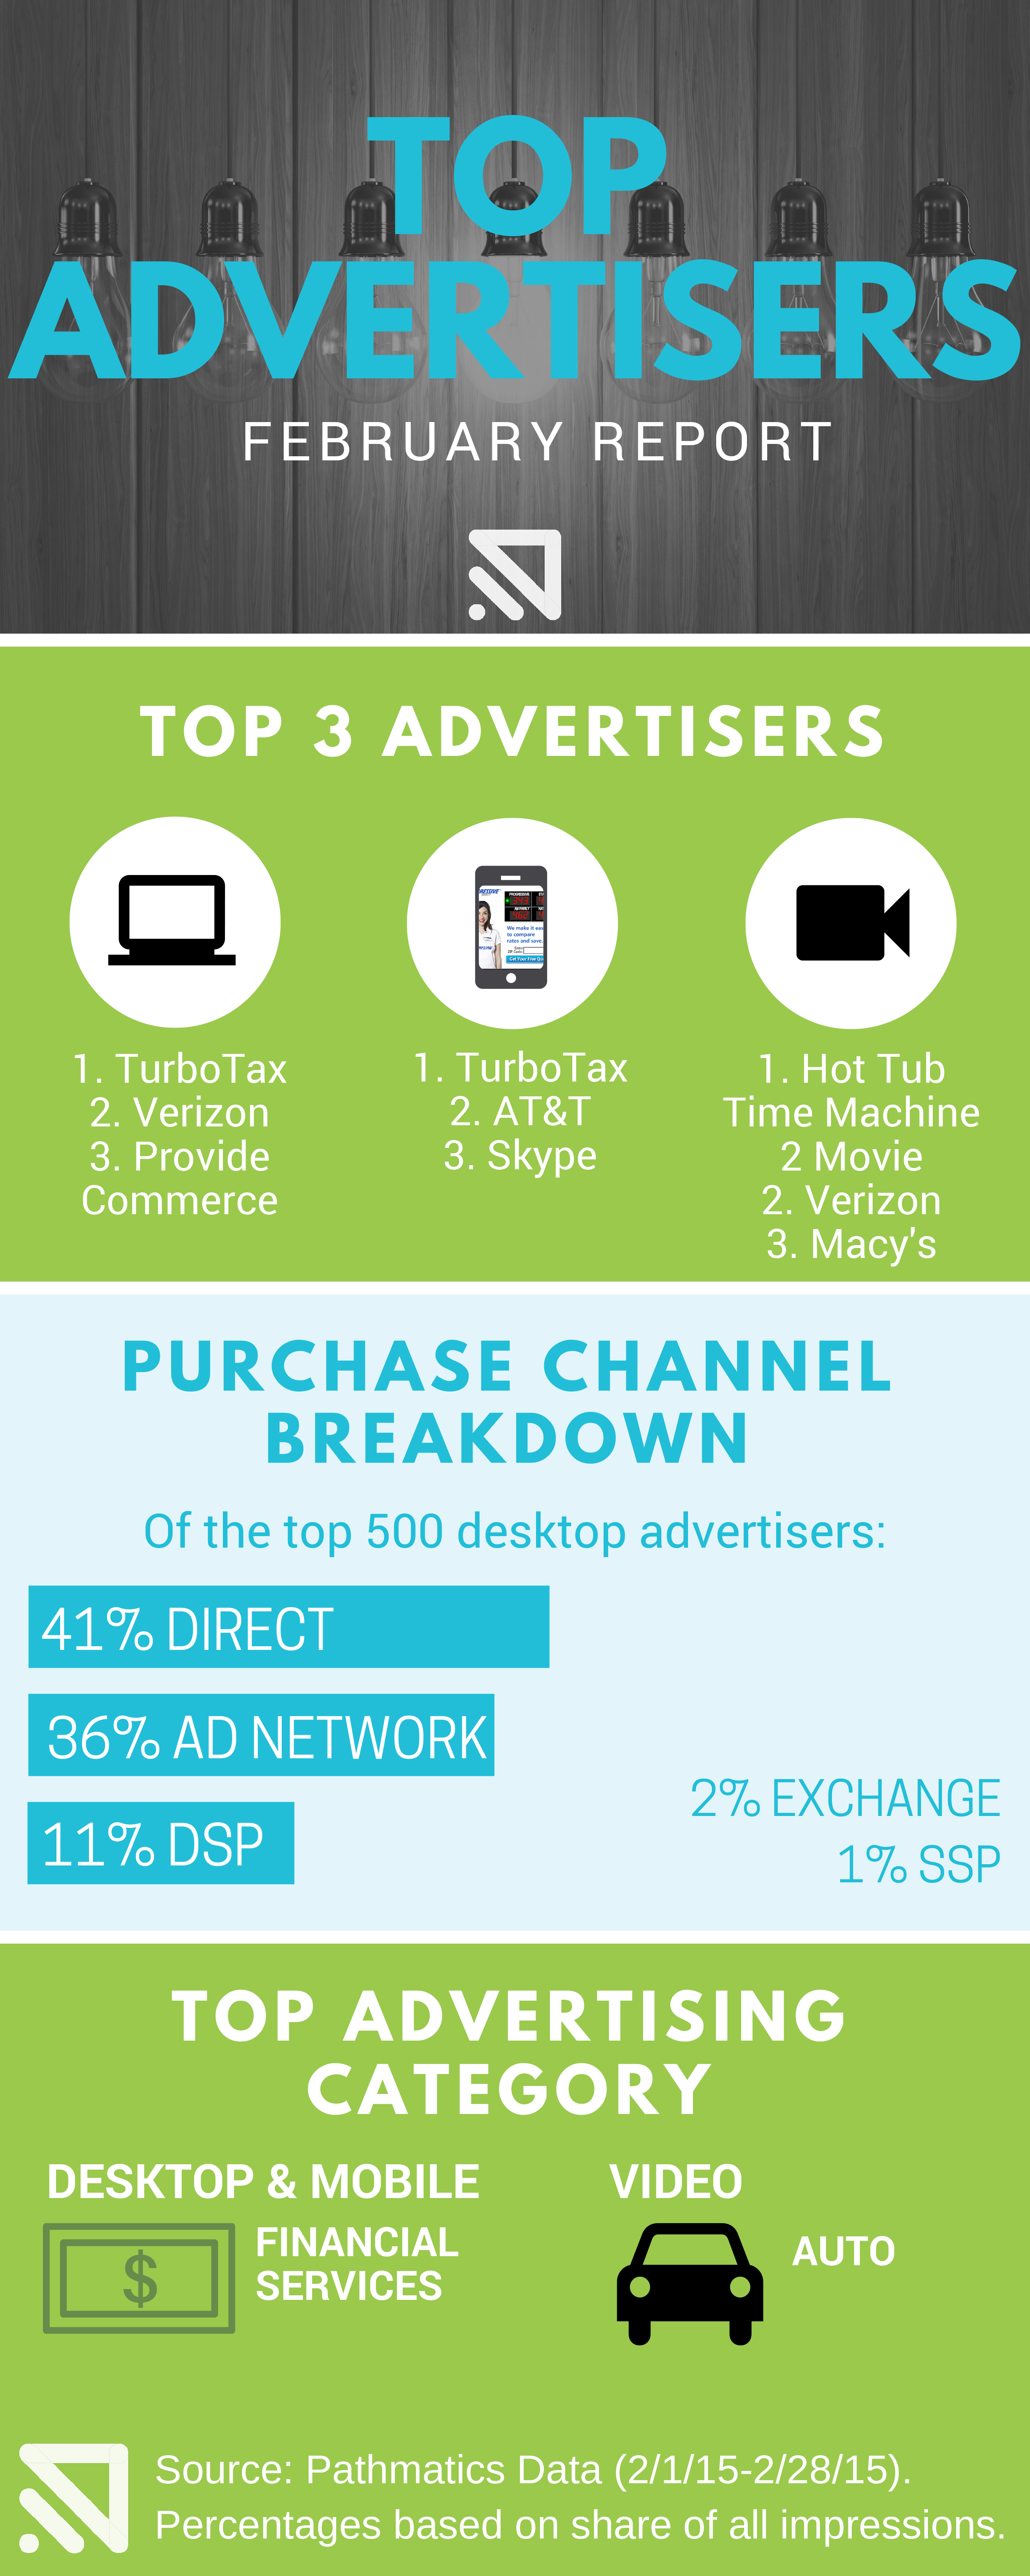 Feb-Top-ADVERTISERS-infographic